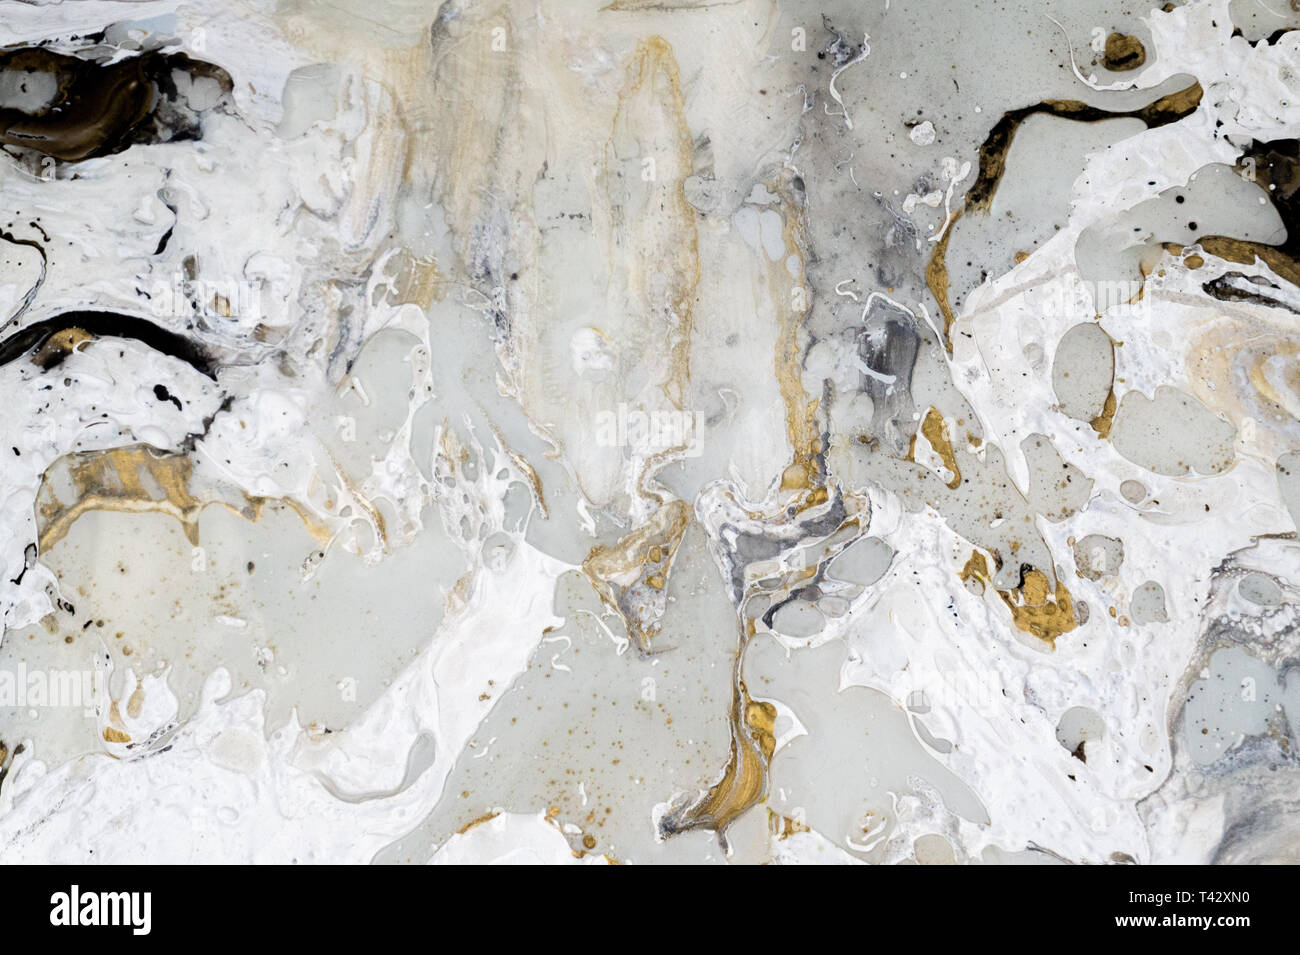 Marble Background Texture With Marble Background Texture With Gold Black Grey And White Colors Using Acrylic Pouring Medium Art Technique Stock Photo Alamy